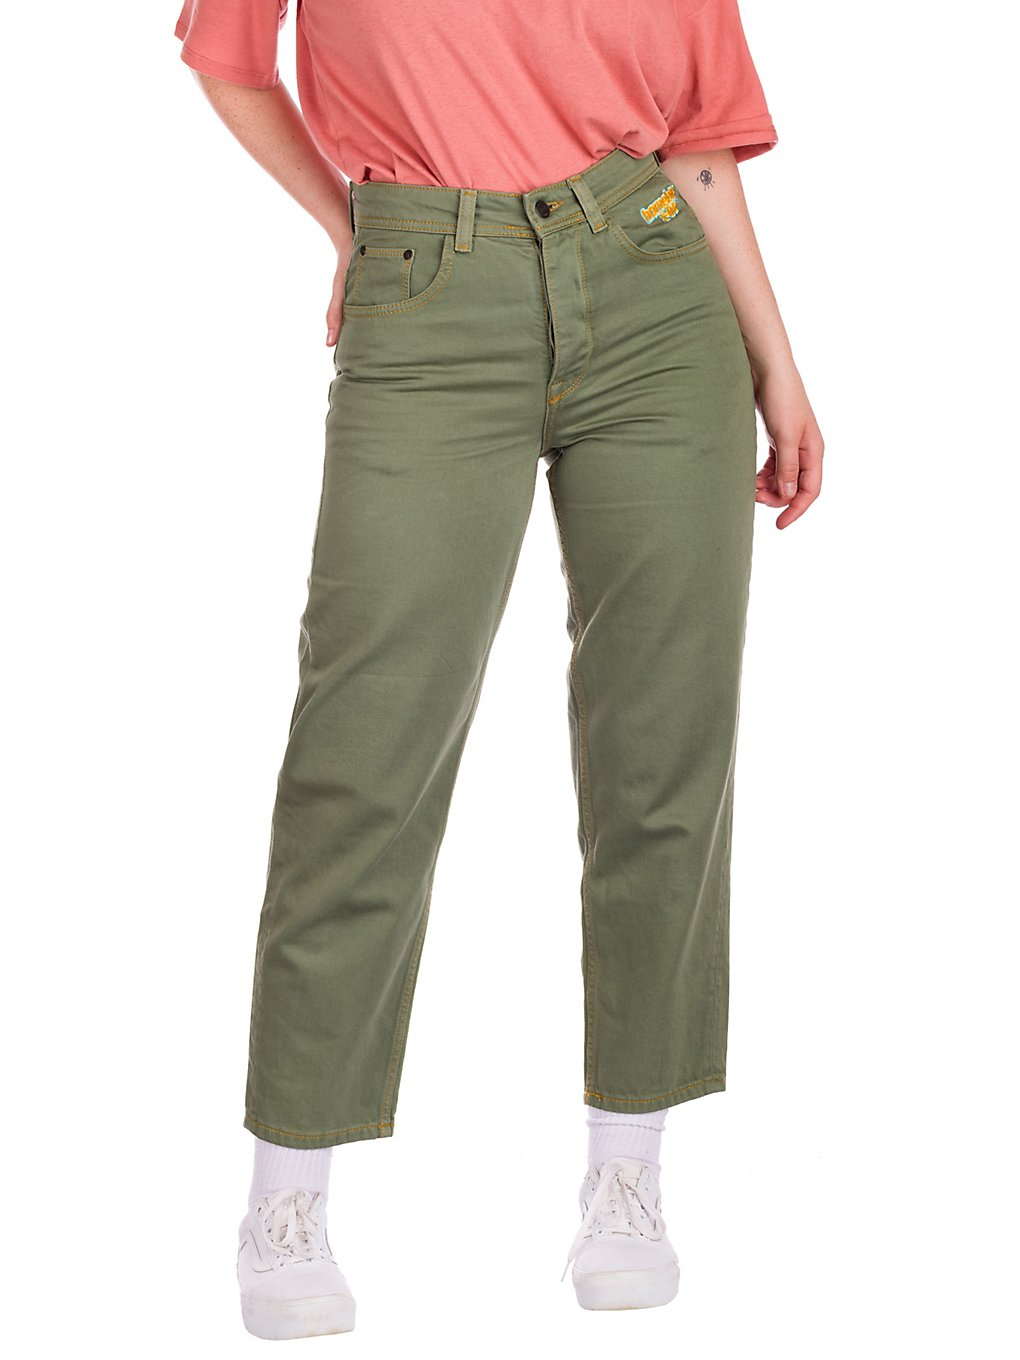 Homeboy X-Tra BAGGY Twill Pants olive